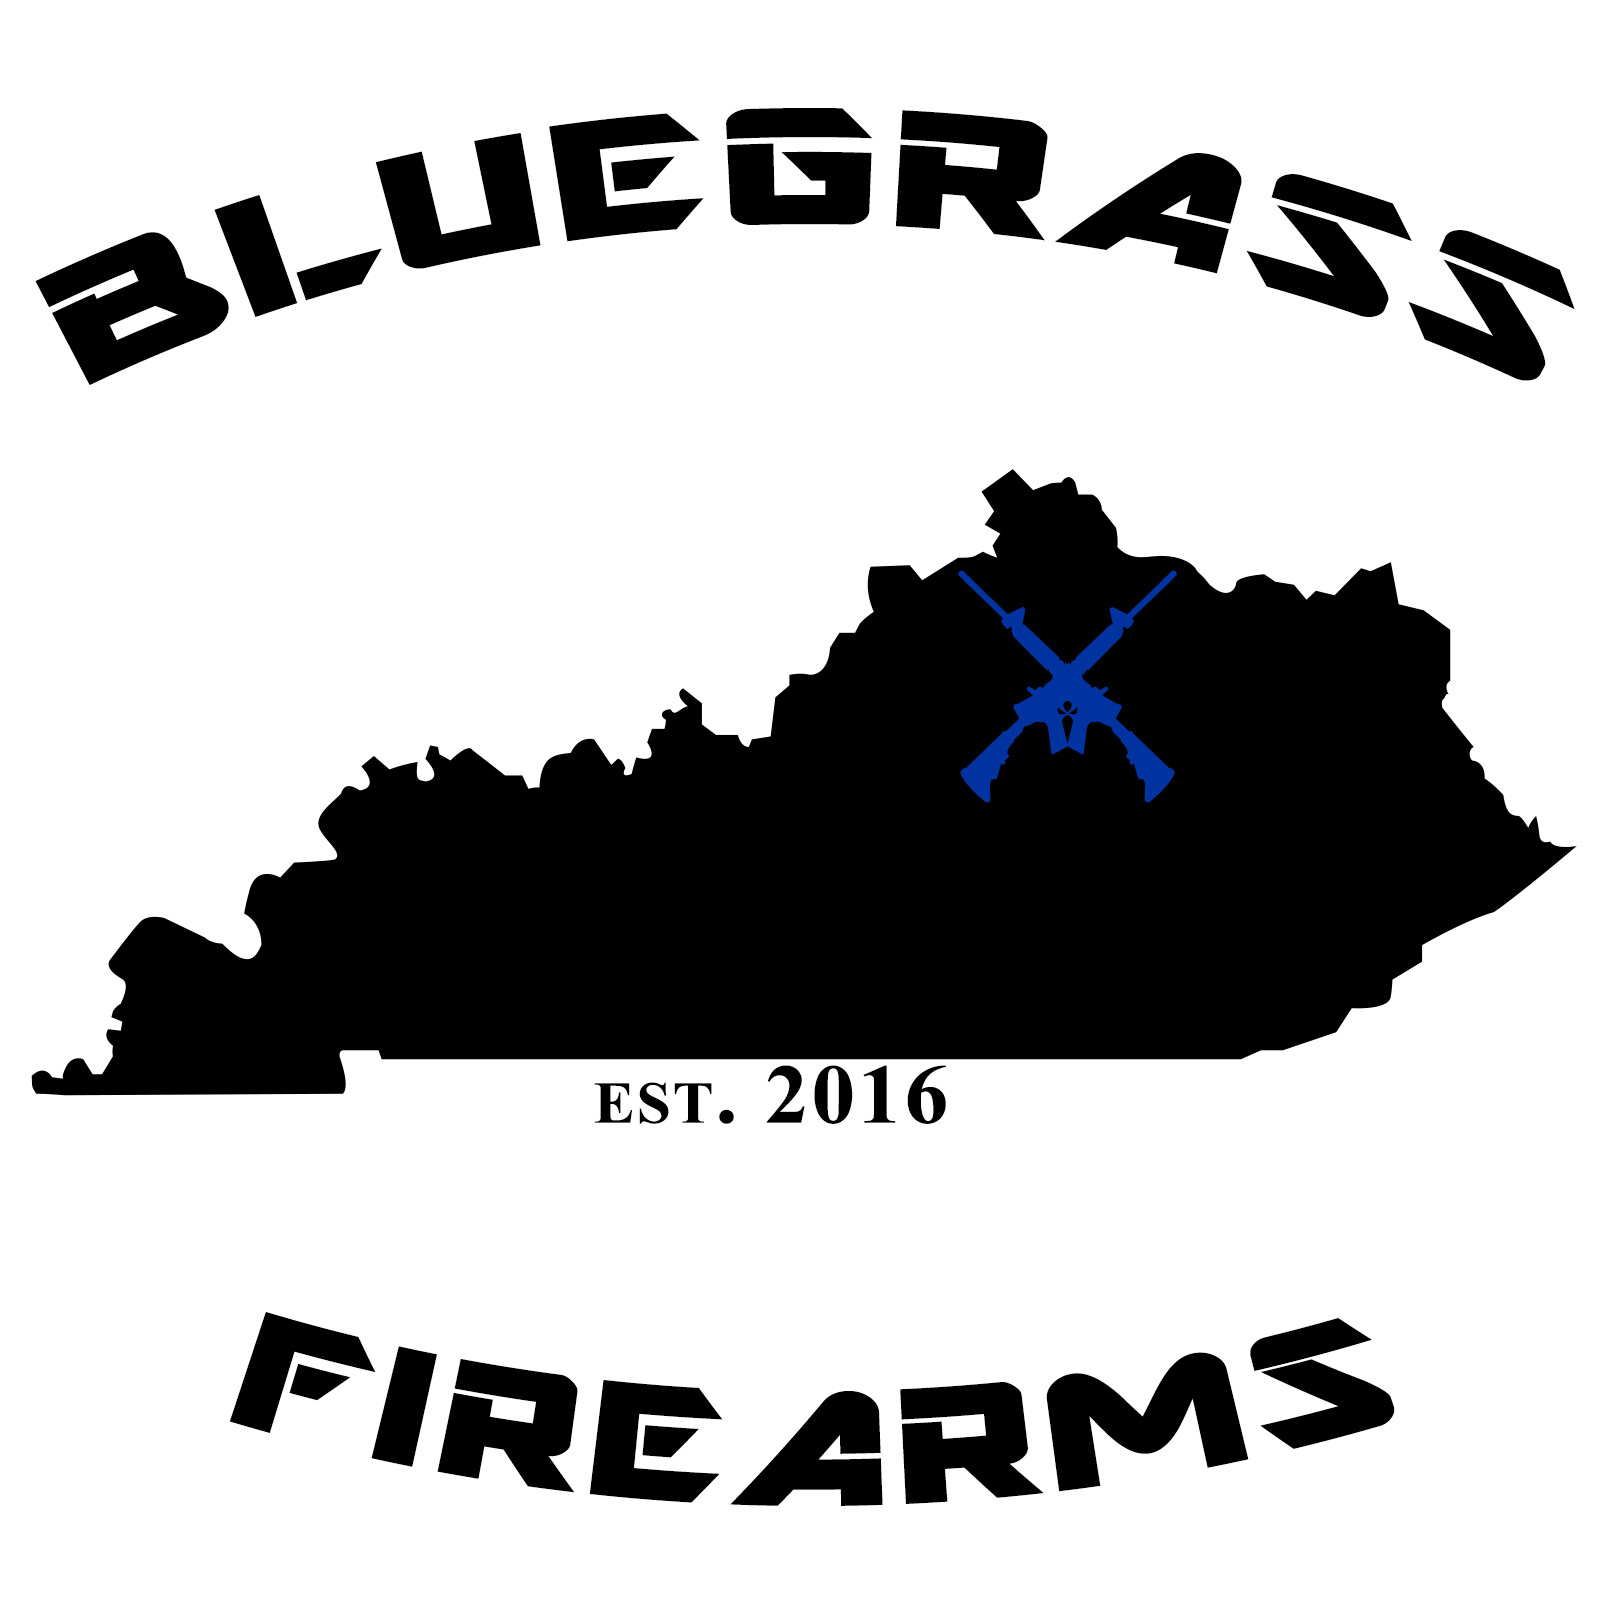 The second iteration of the logo for Bluegrass Firearms